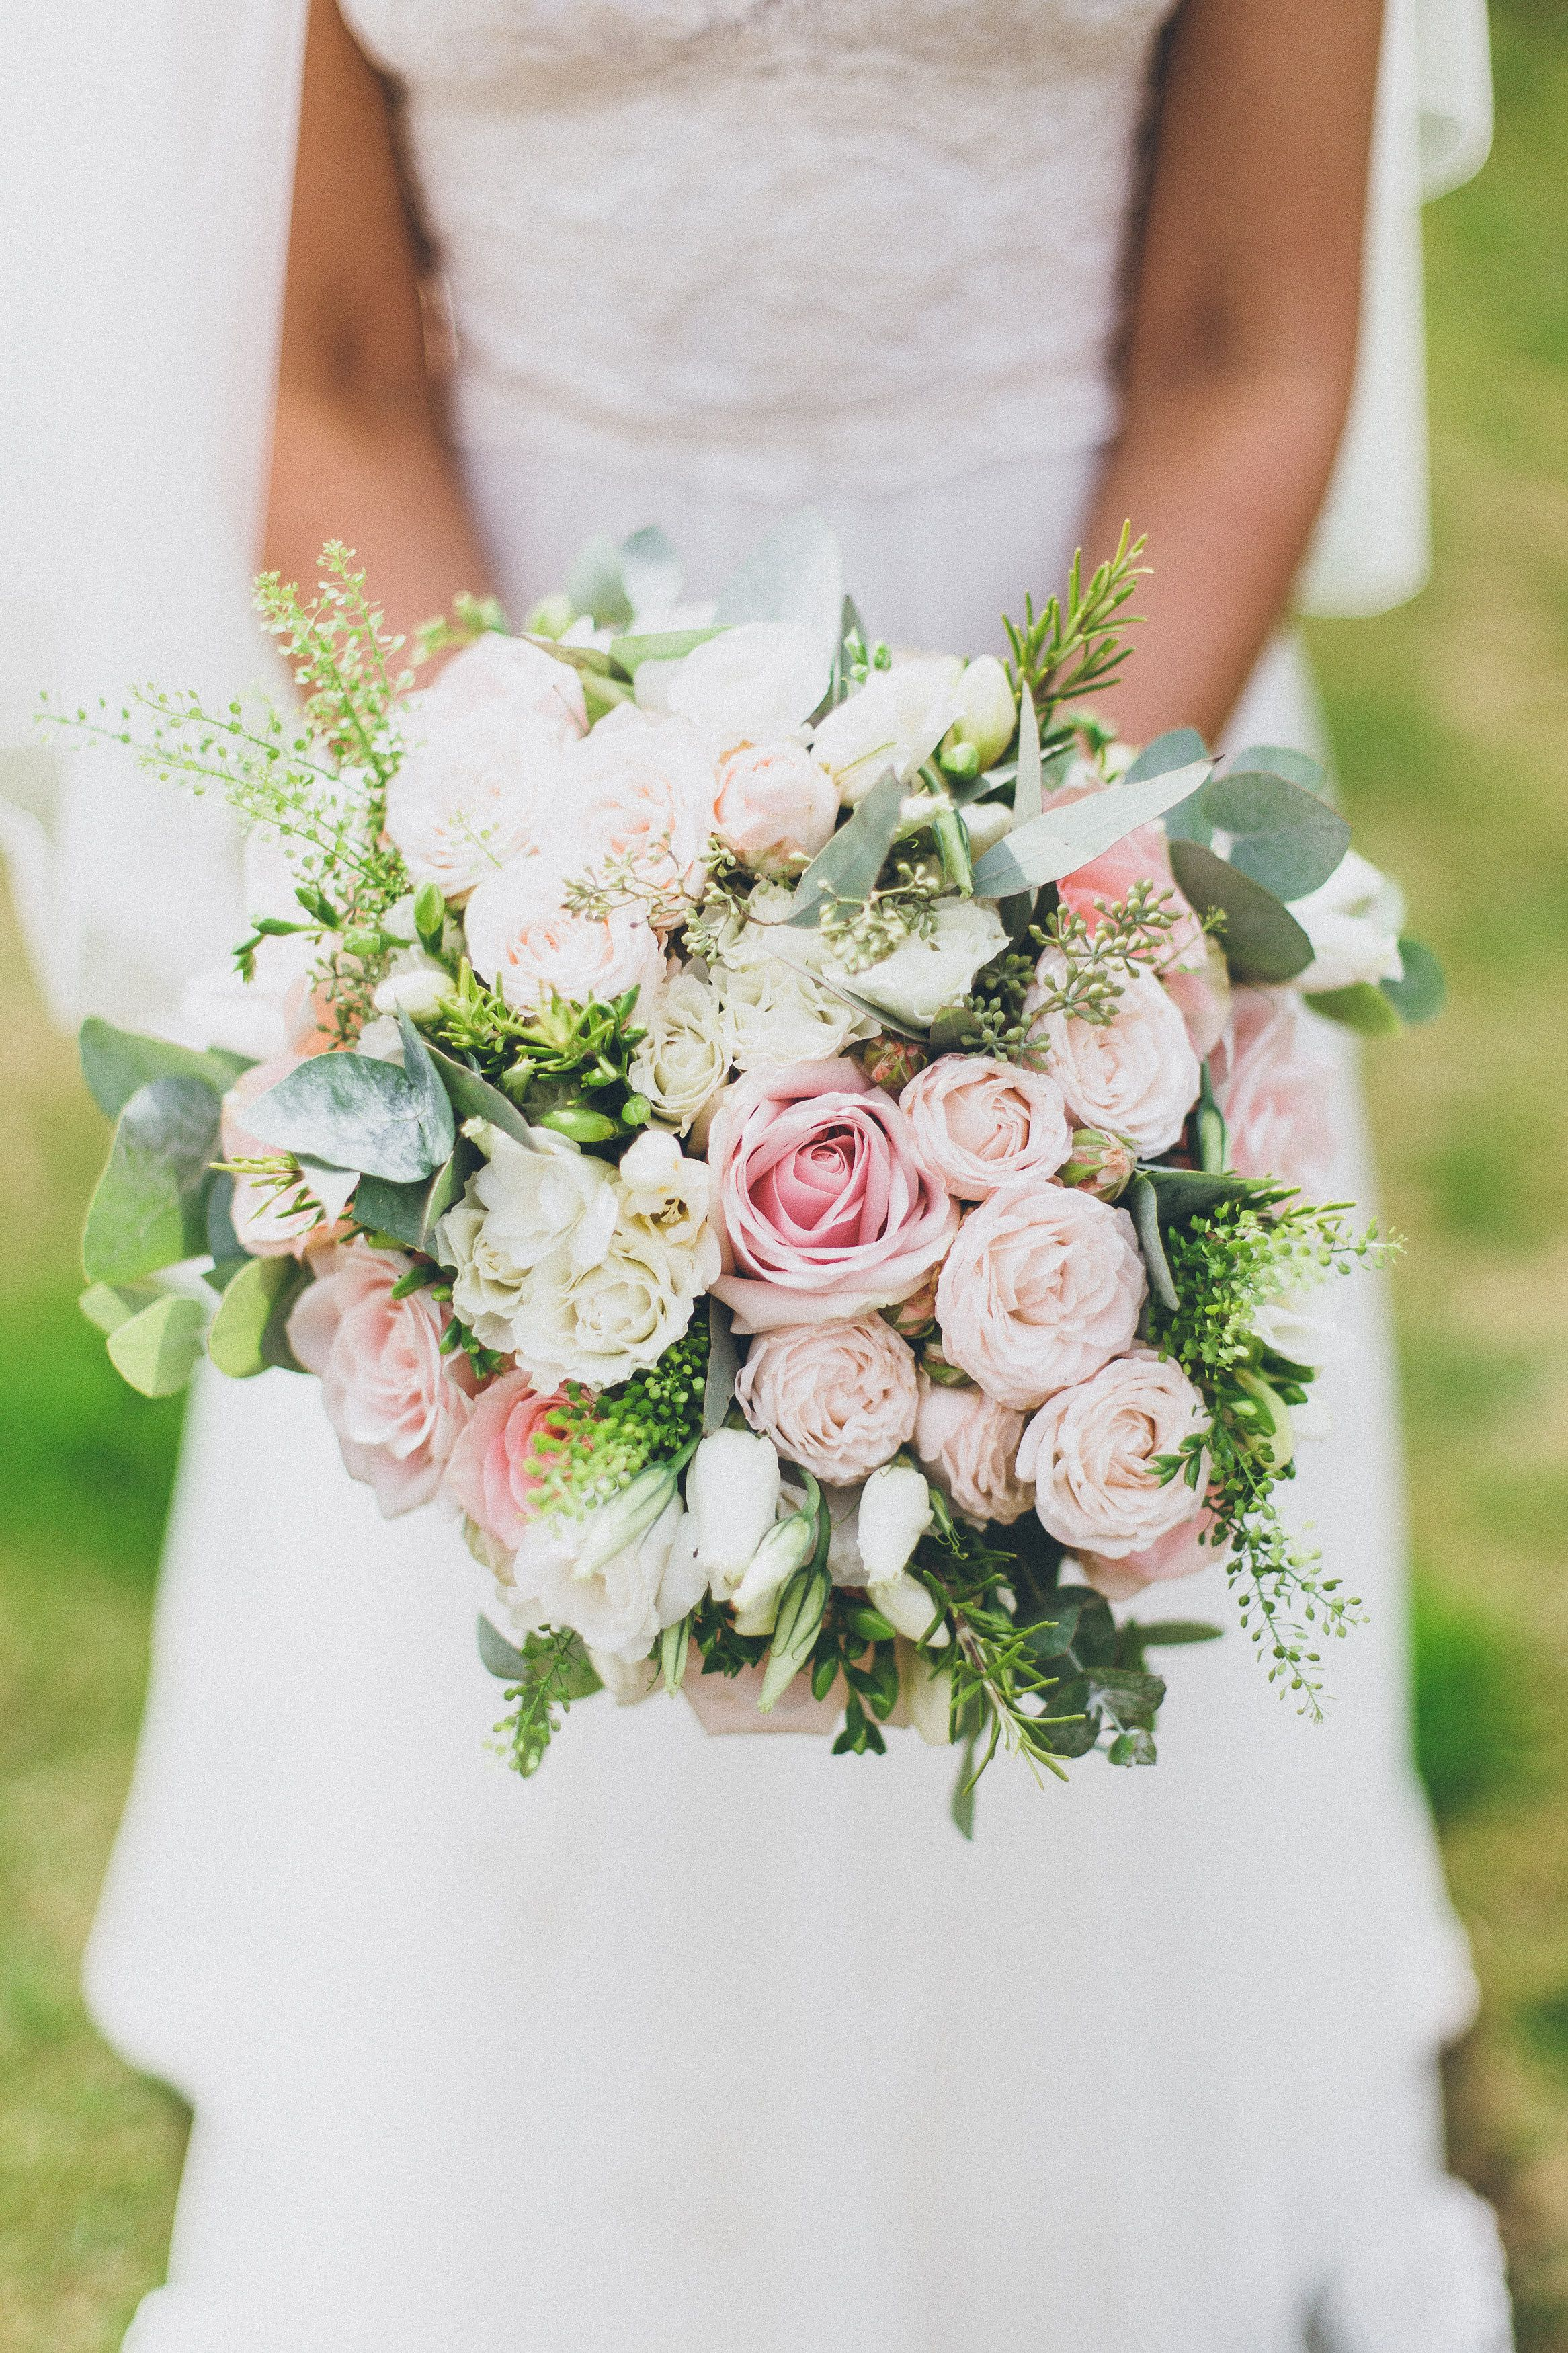 A perfect summer bouquet if ever we saw one image by matthoran85 a perfect summer bouquet if ever we saw one image by matthoran85 wedding izmirmasajfo Choice Image